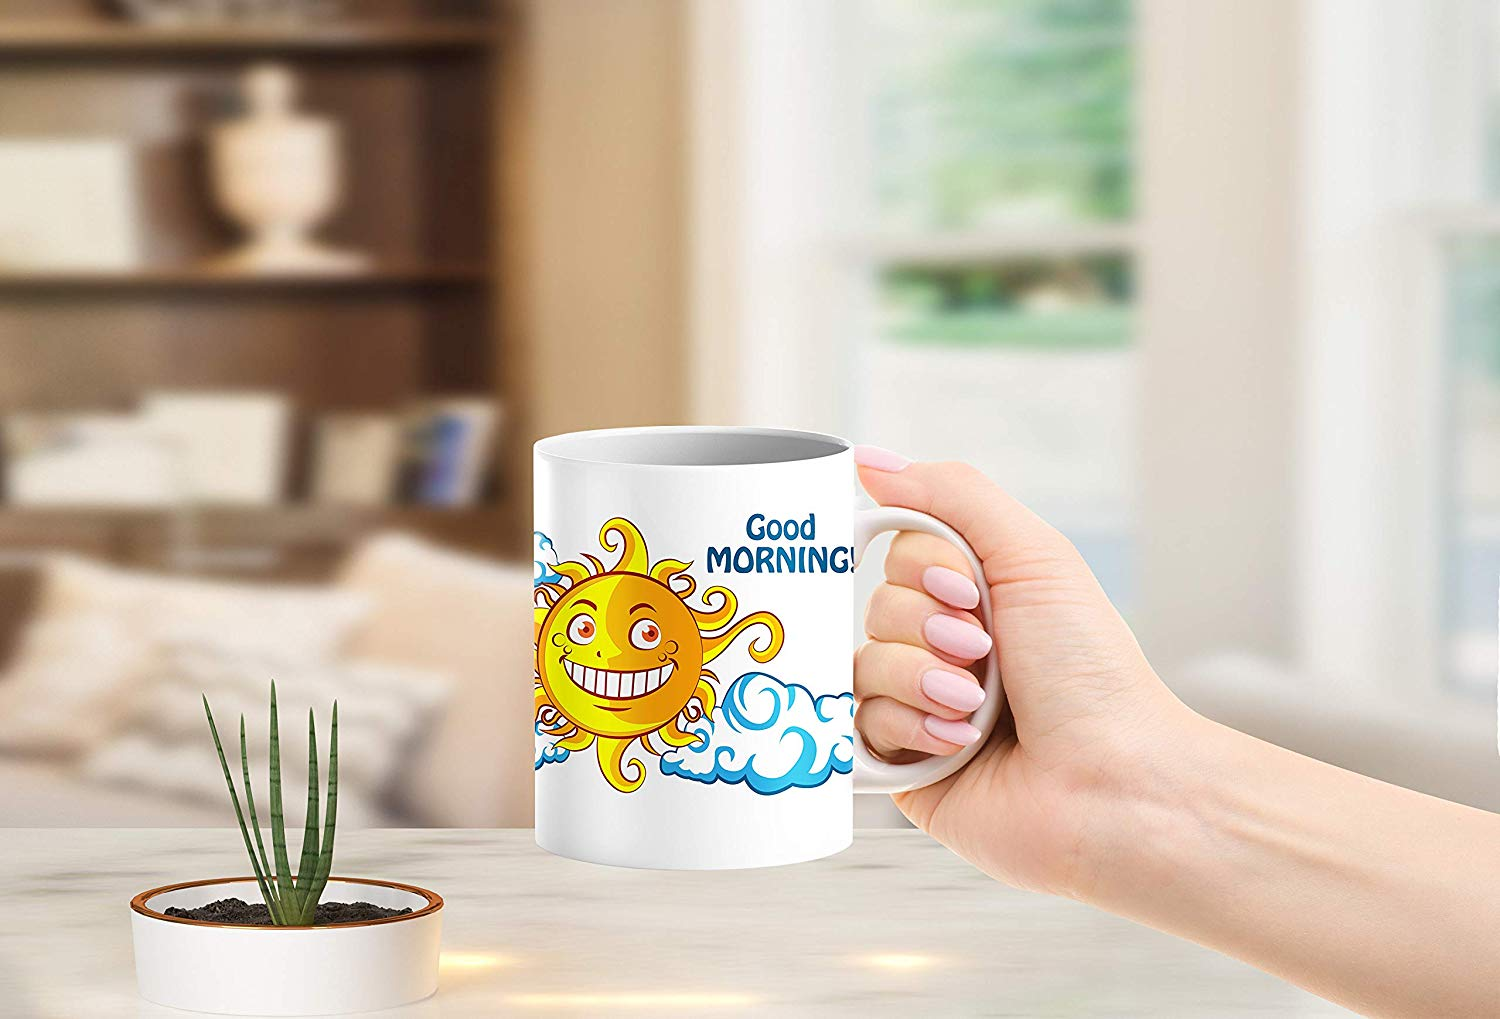 Heat Sensitive Color Changing Coffee Mug Funny Coffee Cup NightDay MoonSun Design Funny Gift Idea B07D223C62 5